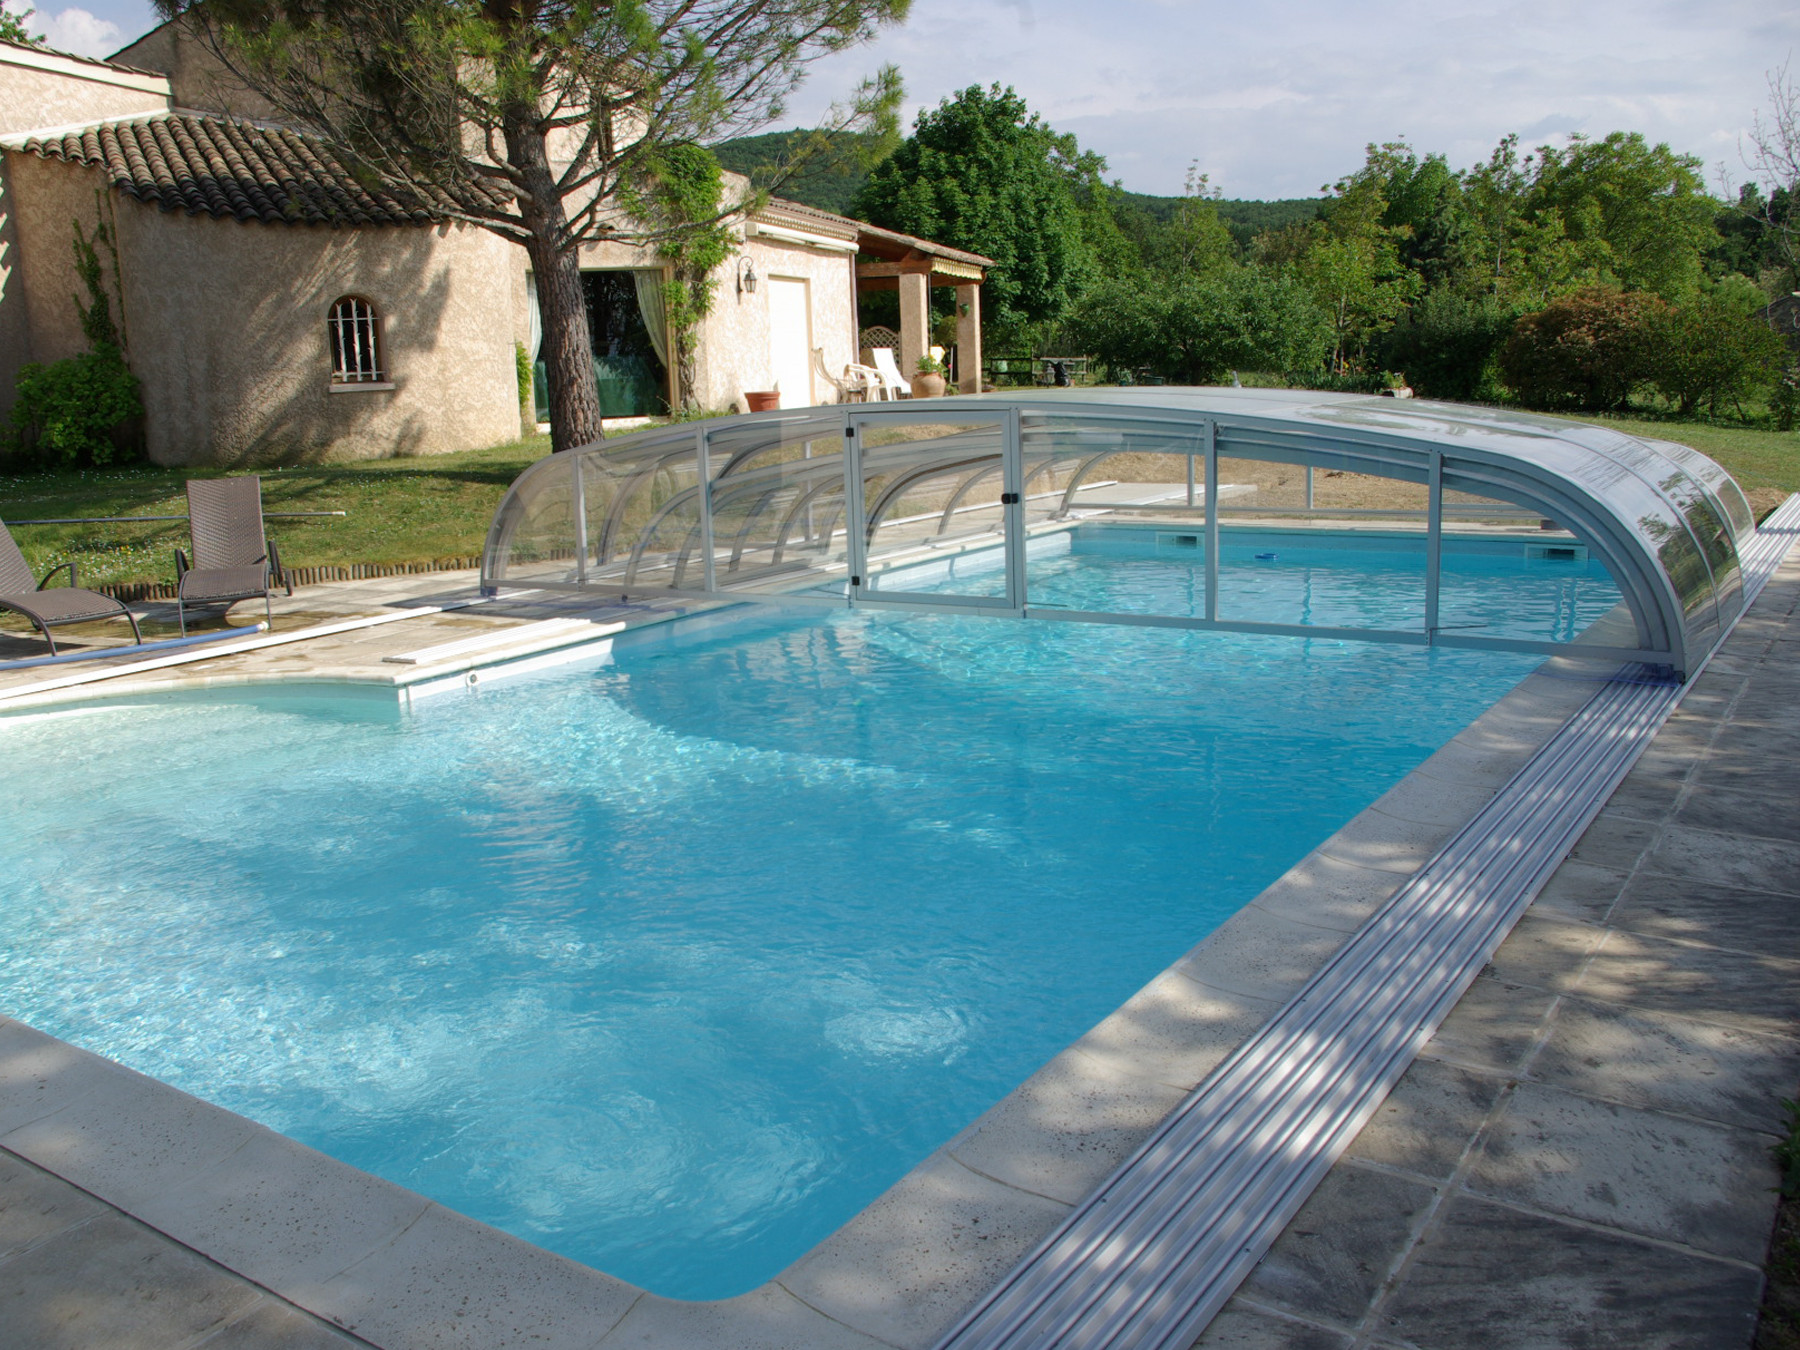 Abri de piscine t lescopique cintral for Abri piscine